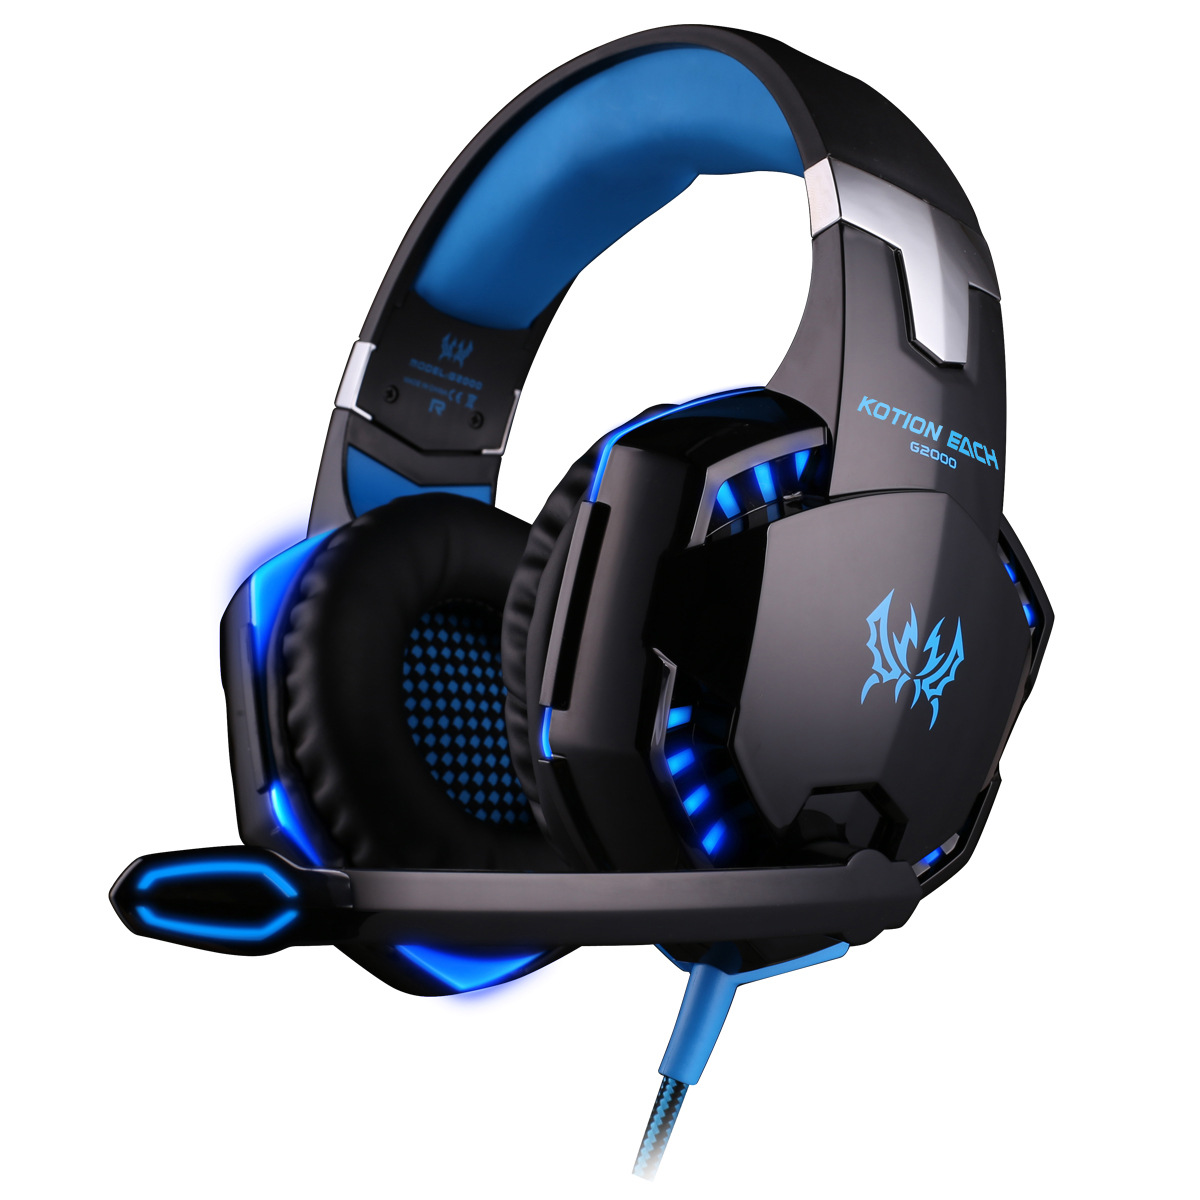 Best PC Gamer Headset LED Backlight Noise Canceling Gaming Headset Stereo Hifi Gaming Headphones Deep Bass With Microphone gaming headset led light glow noise cancealing pc gamer super bass headband headphones with microphone for computer pc